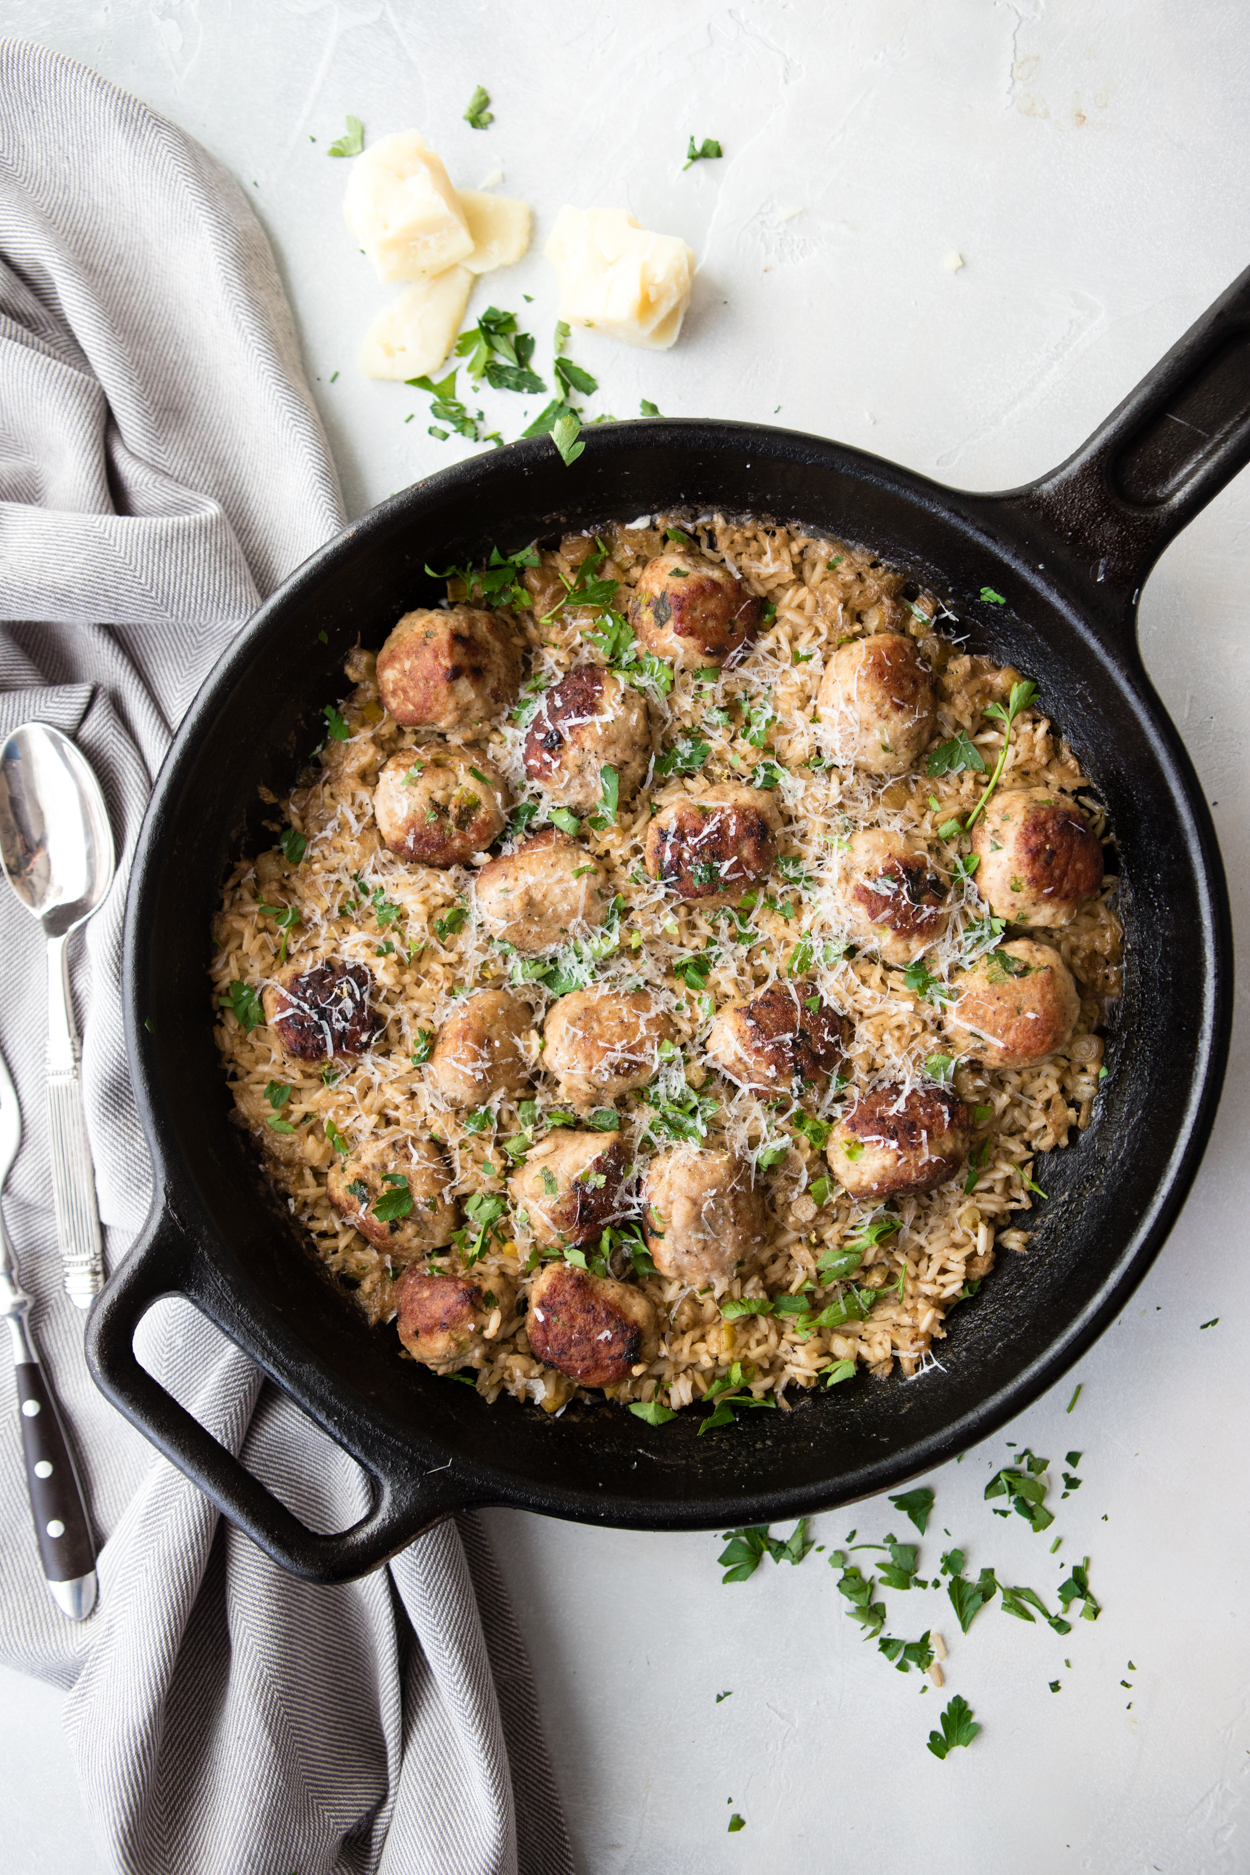 turkey meatballs and brown rice in a cast iron skillet on a white background